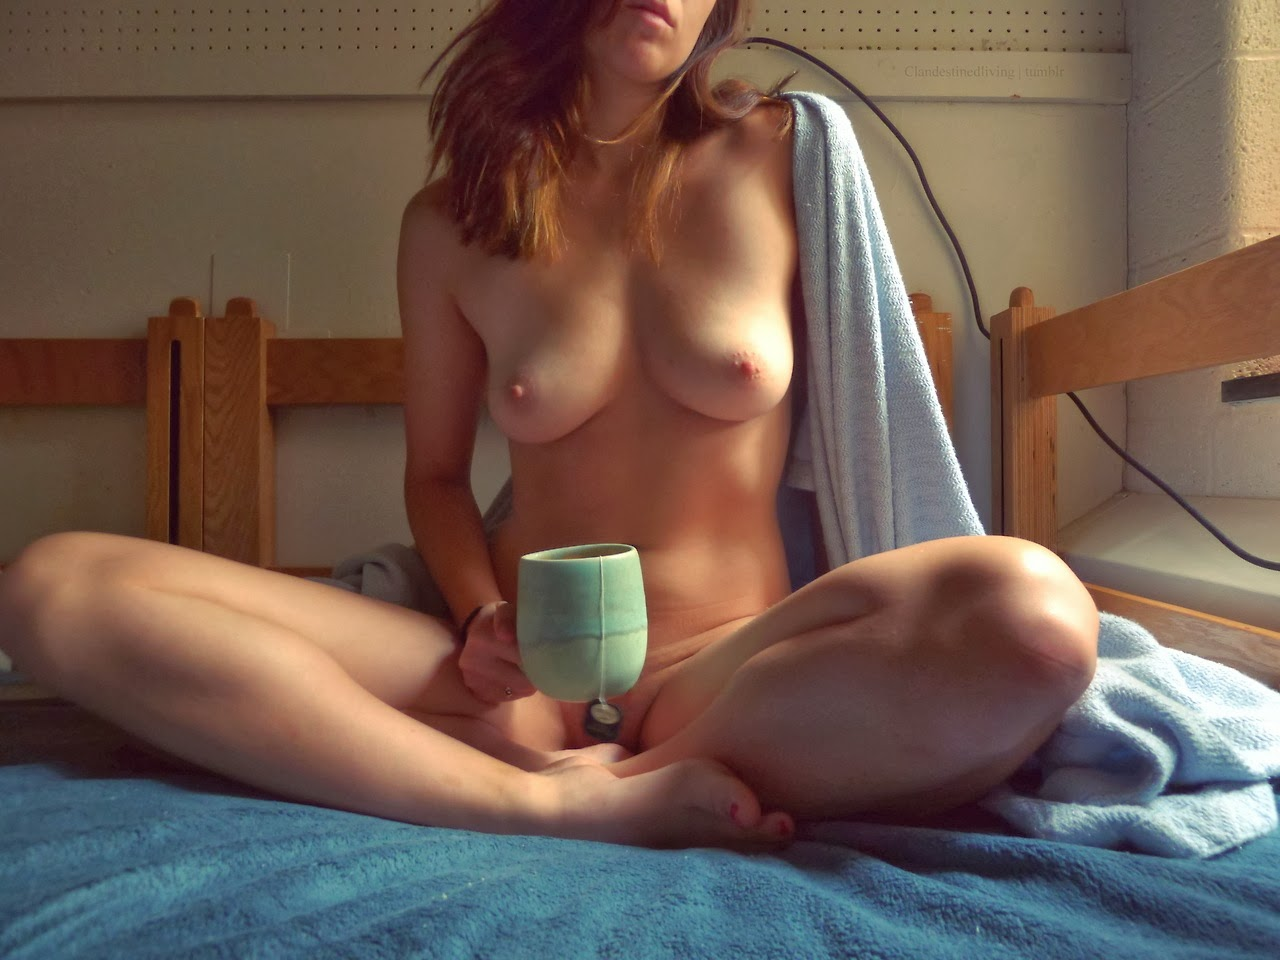 Naked women with coffee there